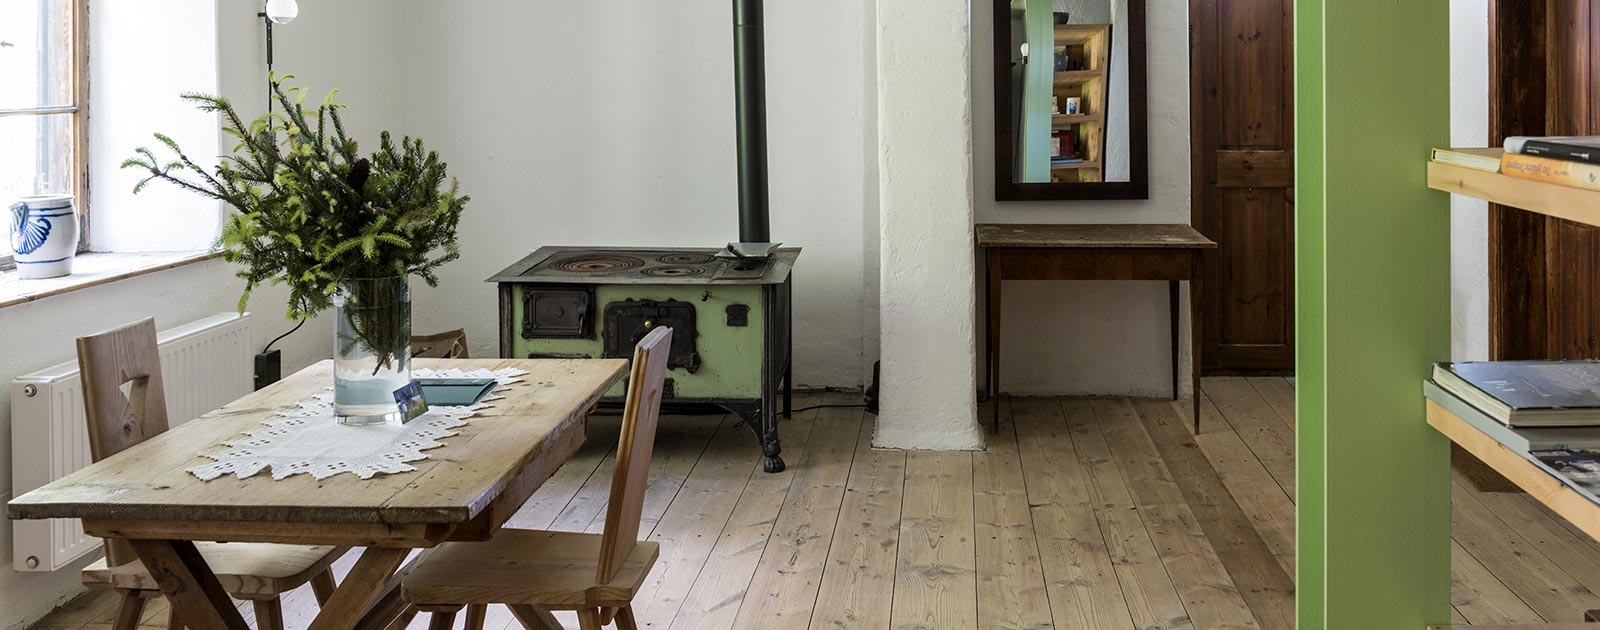 the dining table and an antique wood-burning oven in a room of the Settari house of the Briol hotel in Barbiano